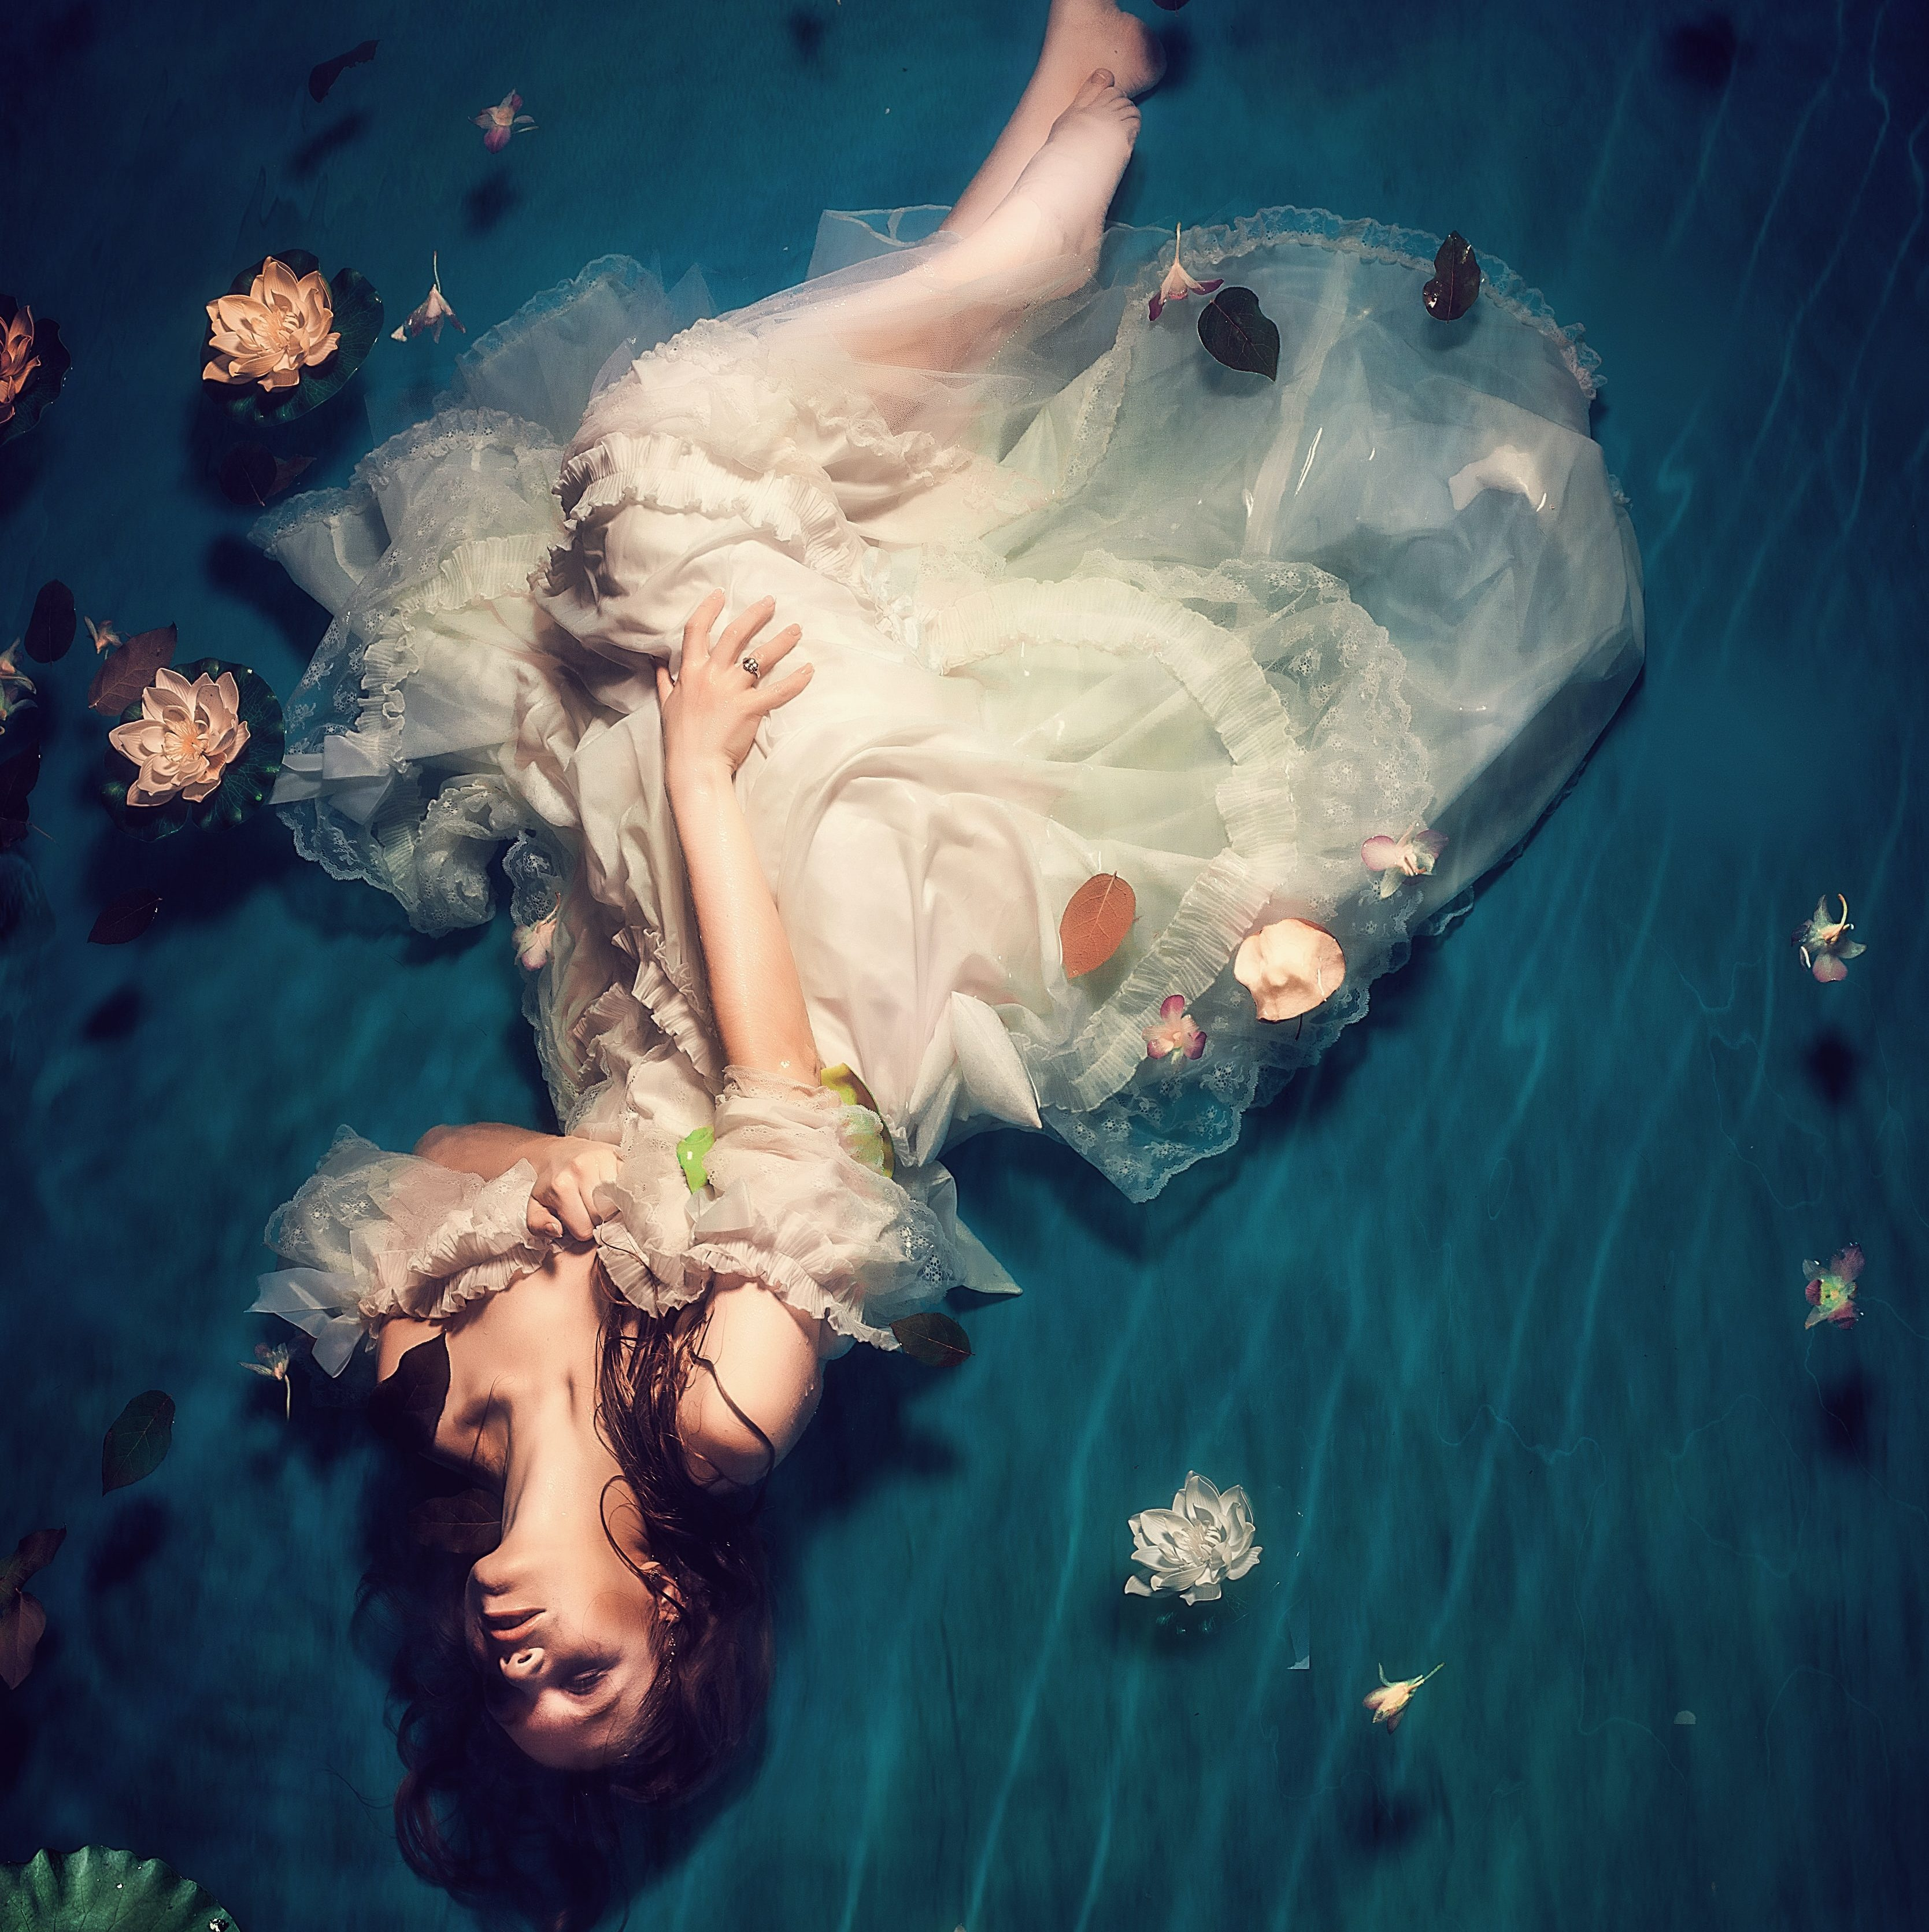 A feminine figure in a white dress is floating in a pool of water. Lotuses, lilies, and lily pads float around them.